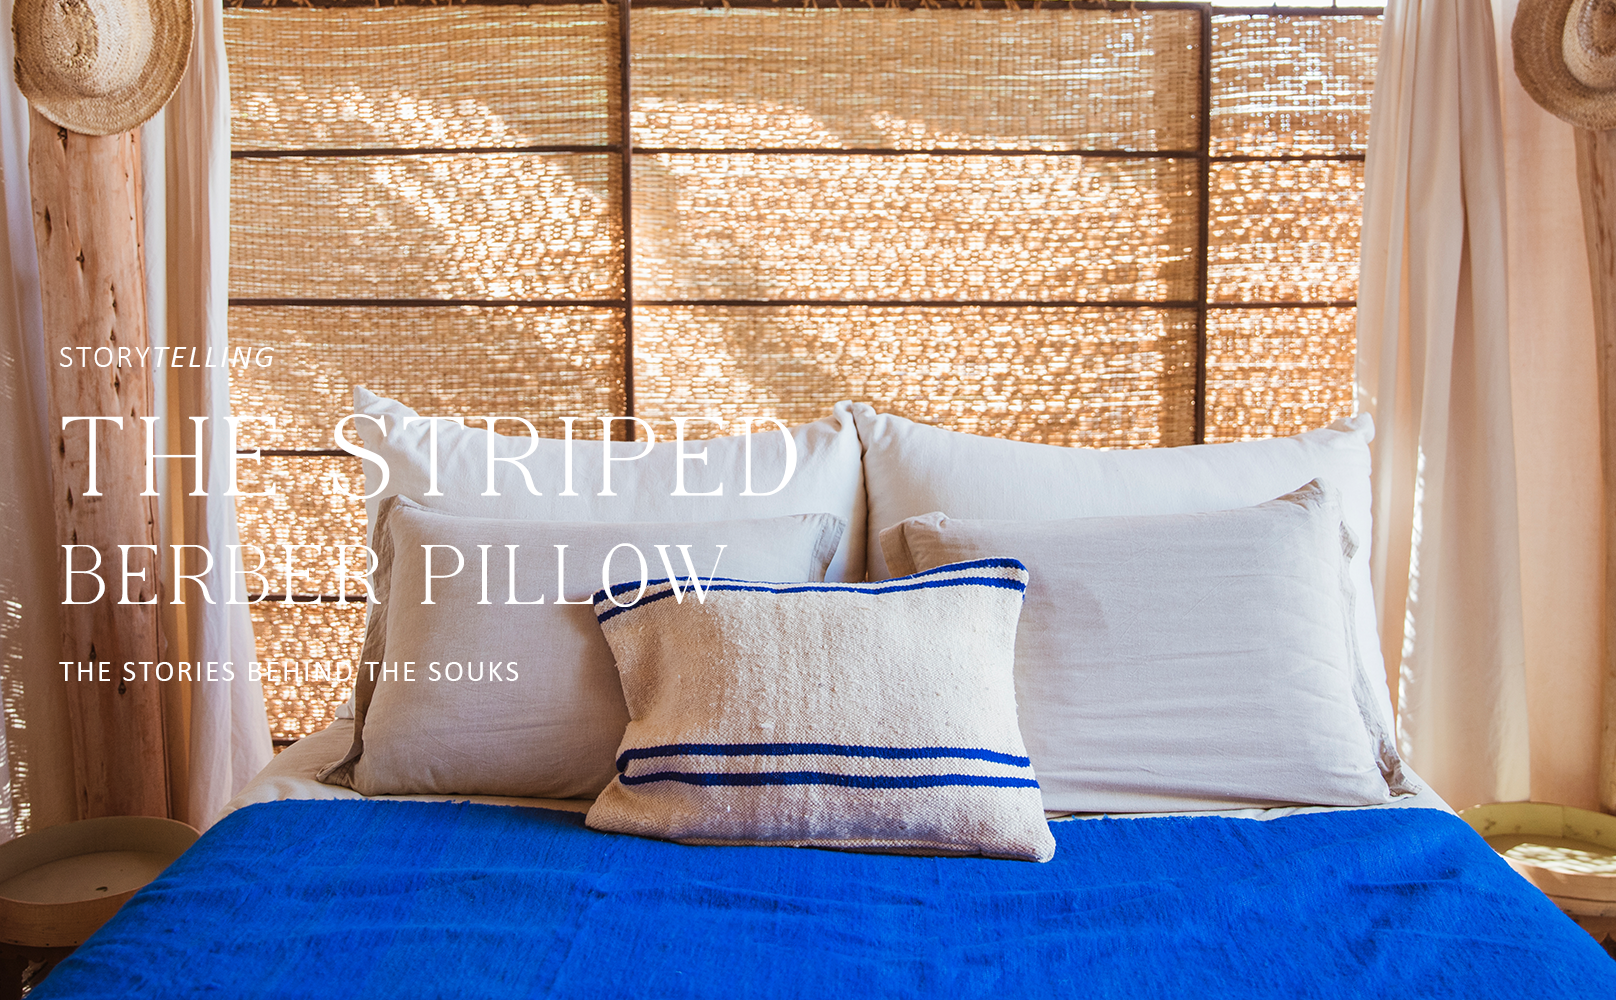 Story Behind the Striped Berber Pillow